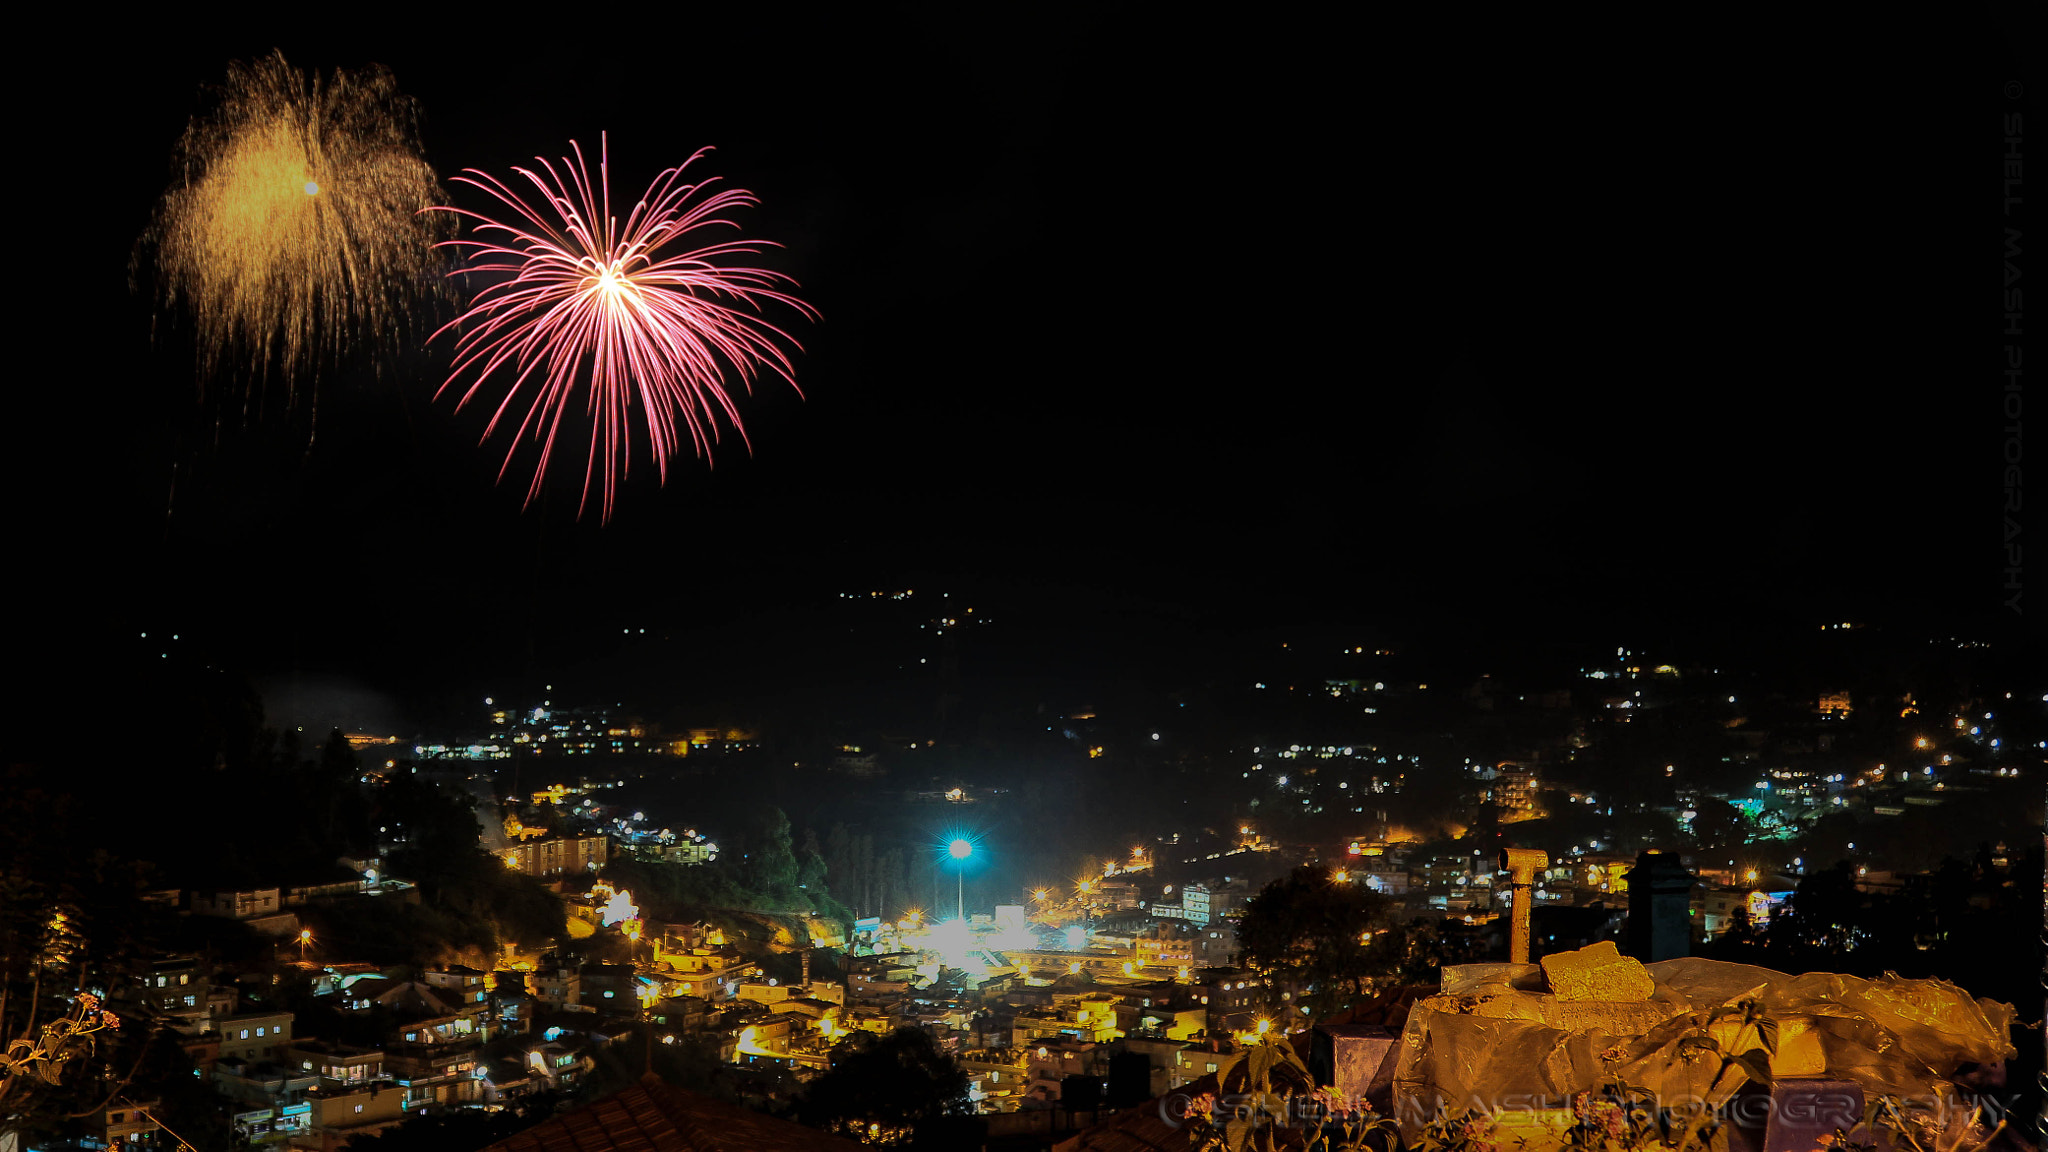 Photograph Fireworks at coonoor by Shell Mash on 500px